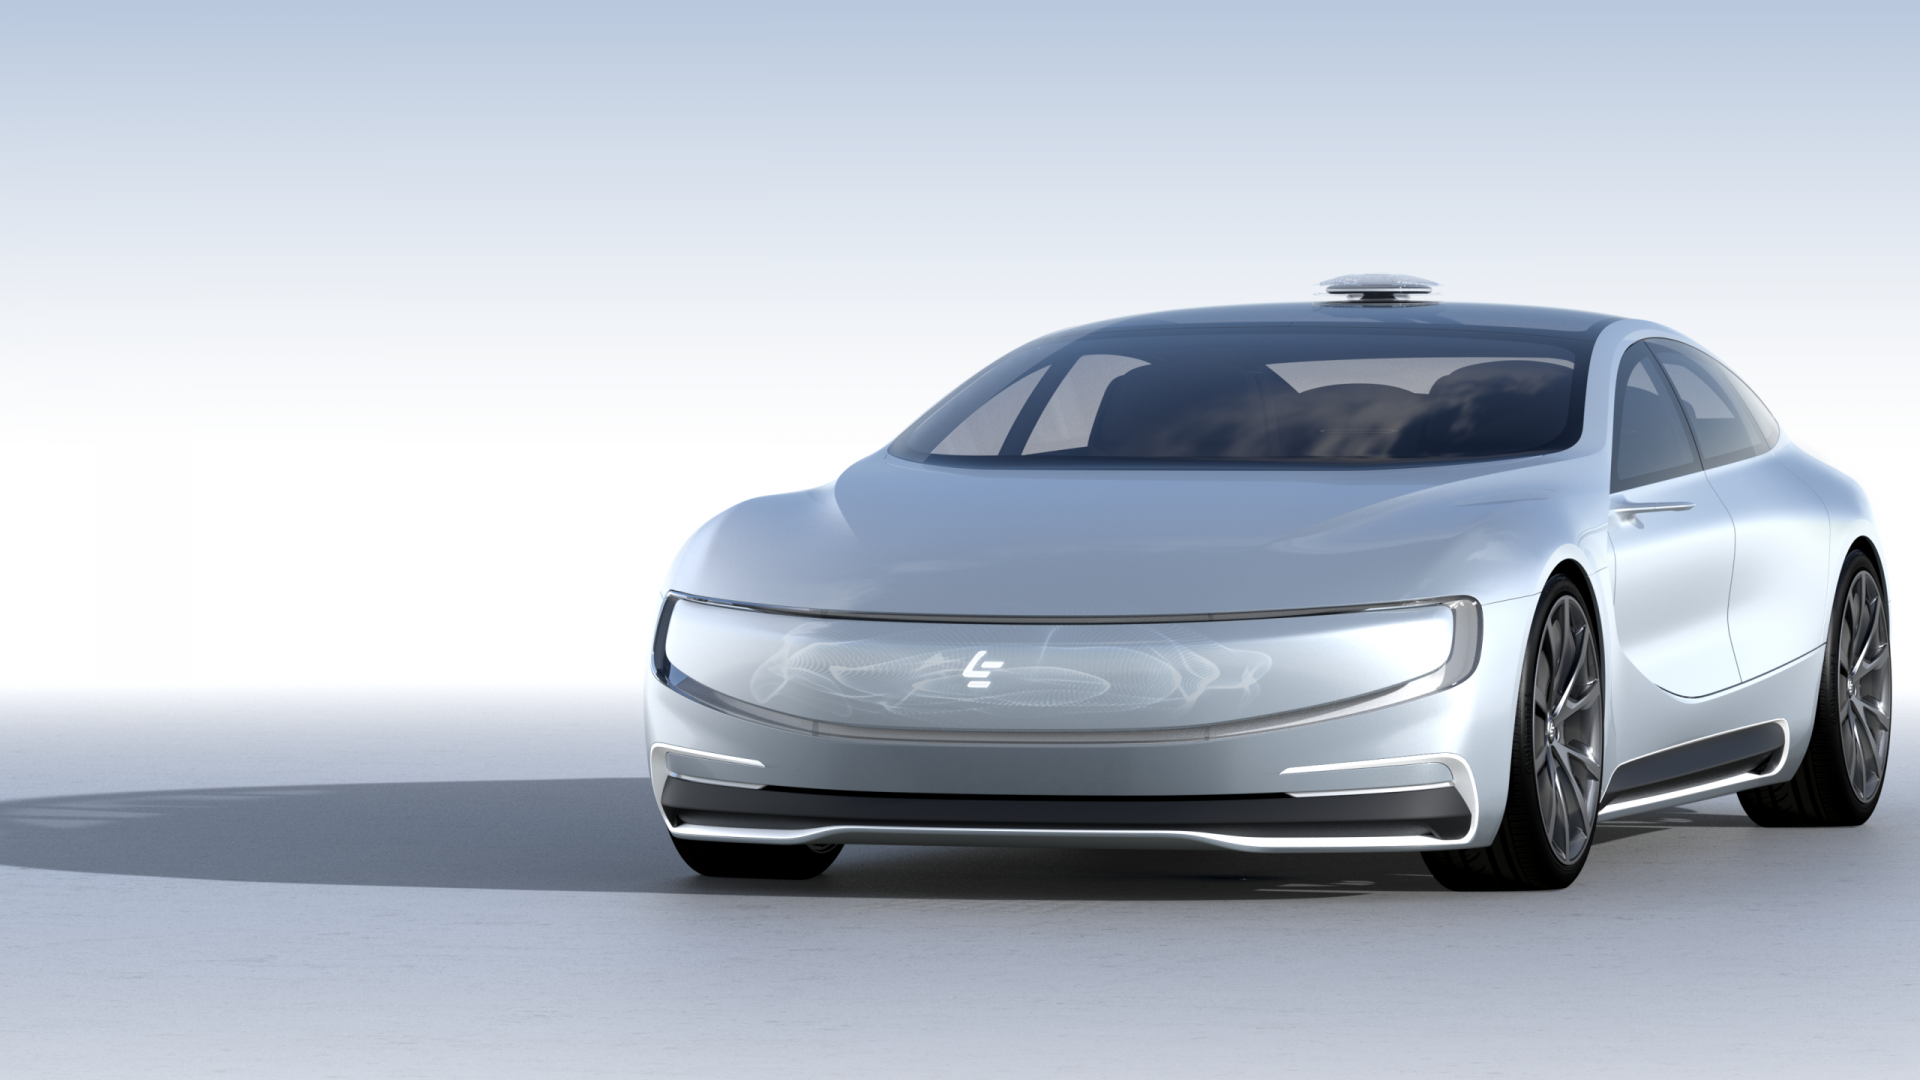 LeEco LeSEE Pro, electric car, self driving car (horizontal)